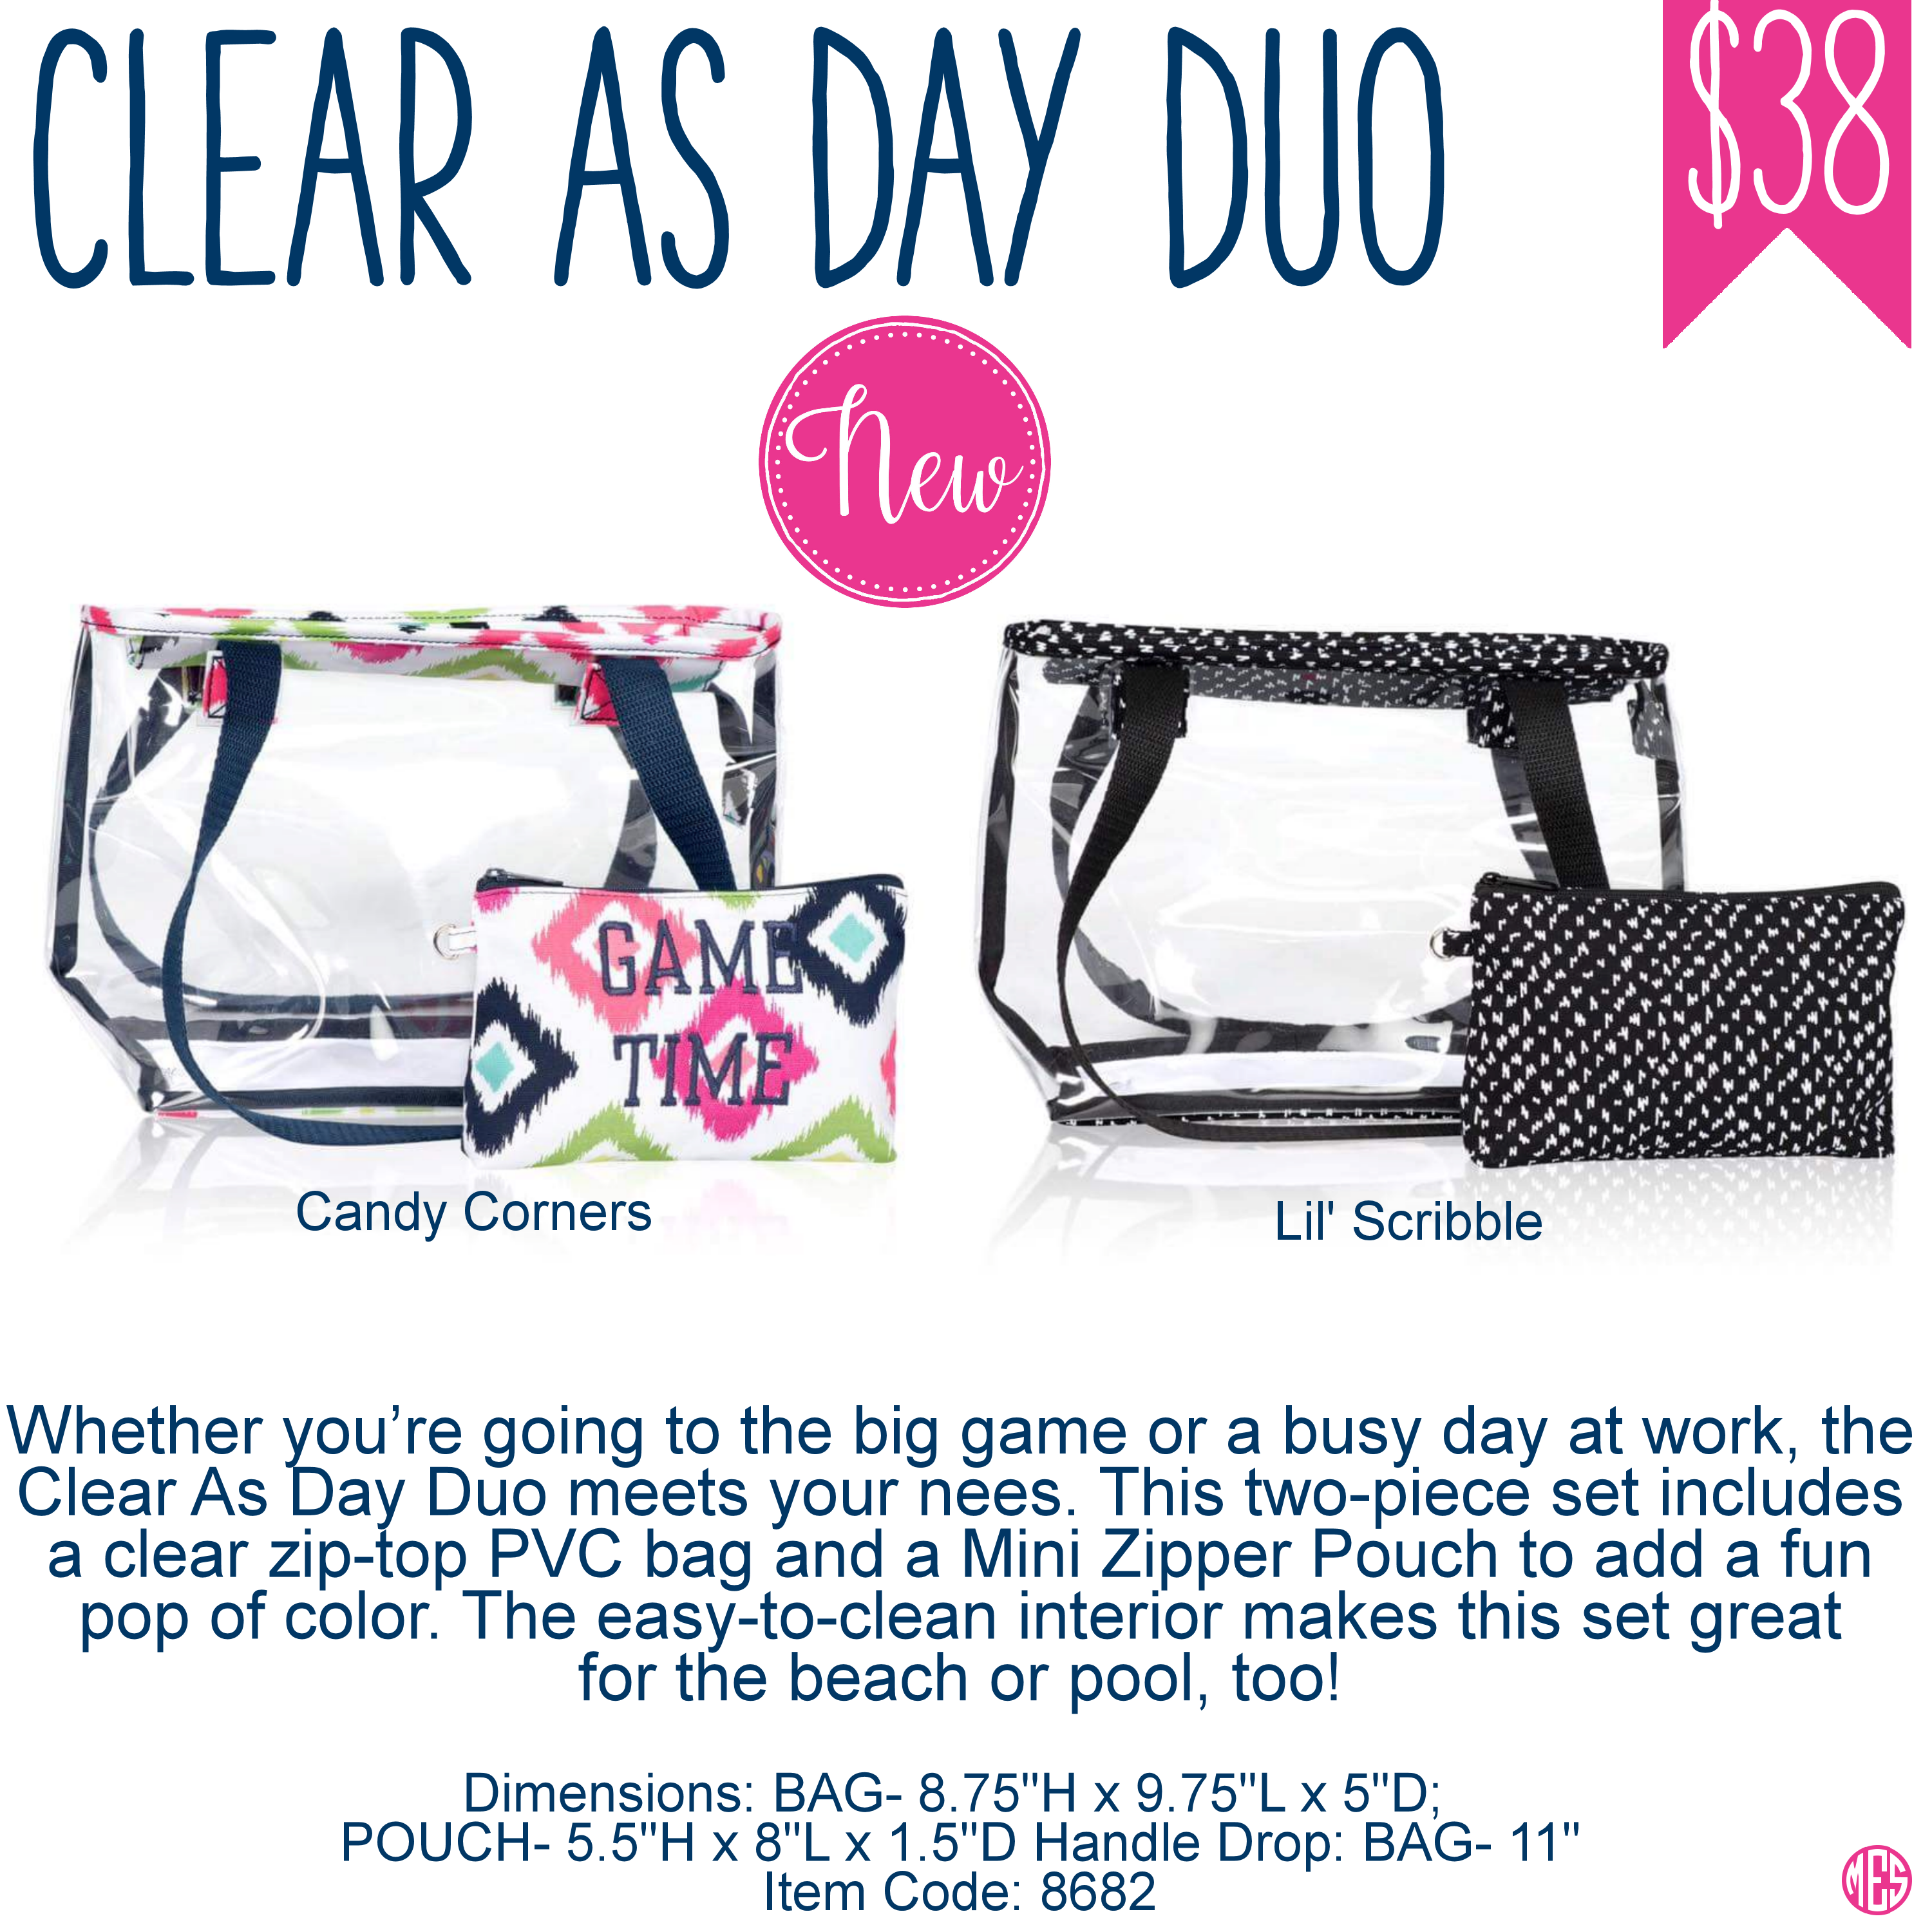 Thirty one november customer special 2014 - Clear As Day Duo By Thirty One Spring Summer 2017 New Product